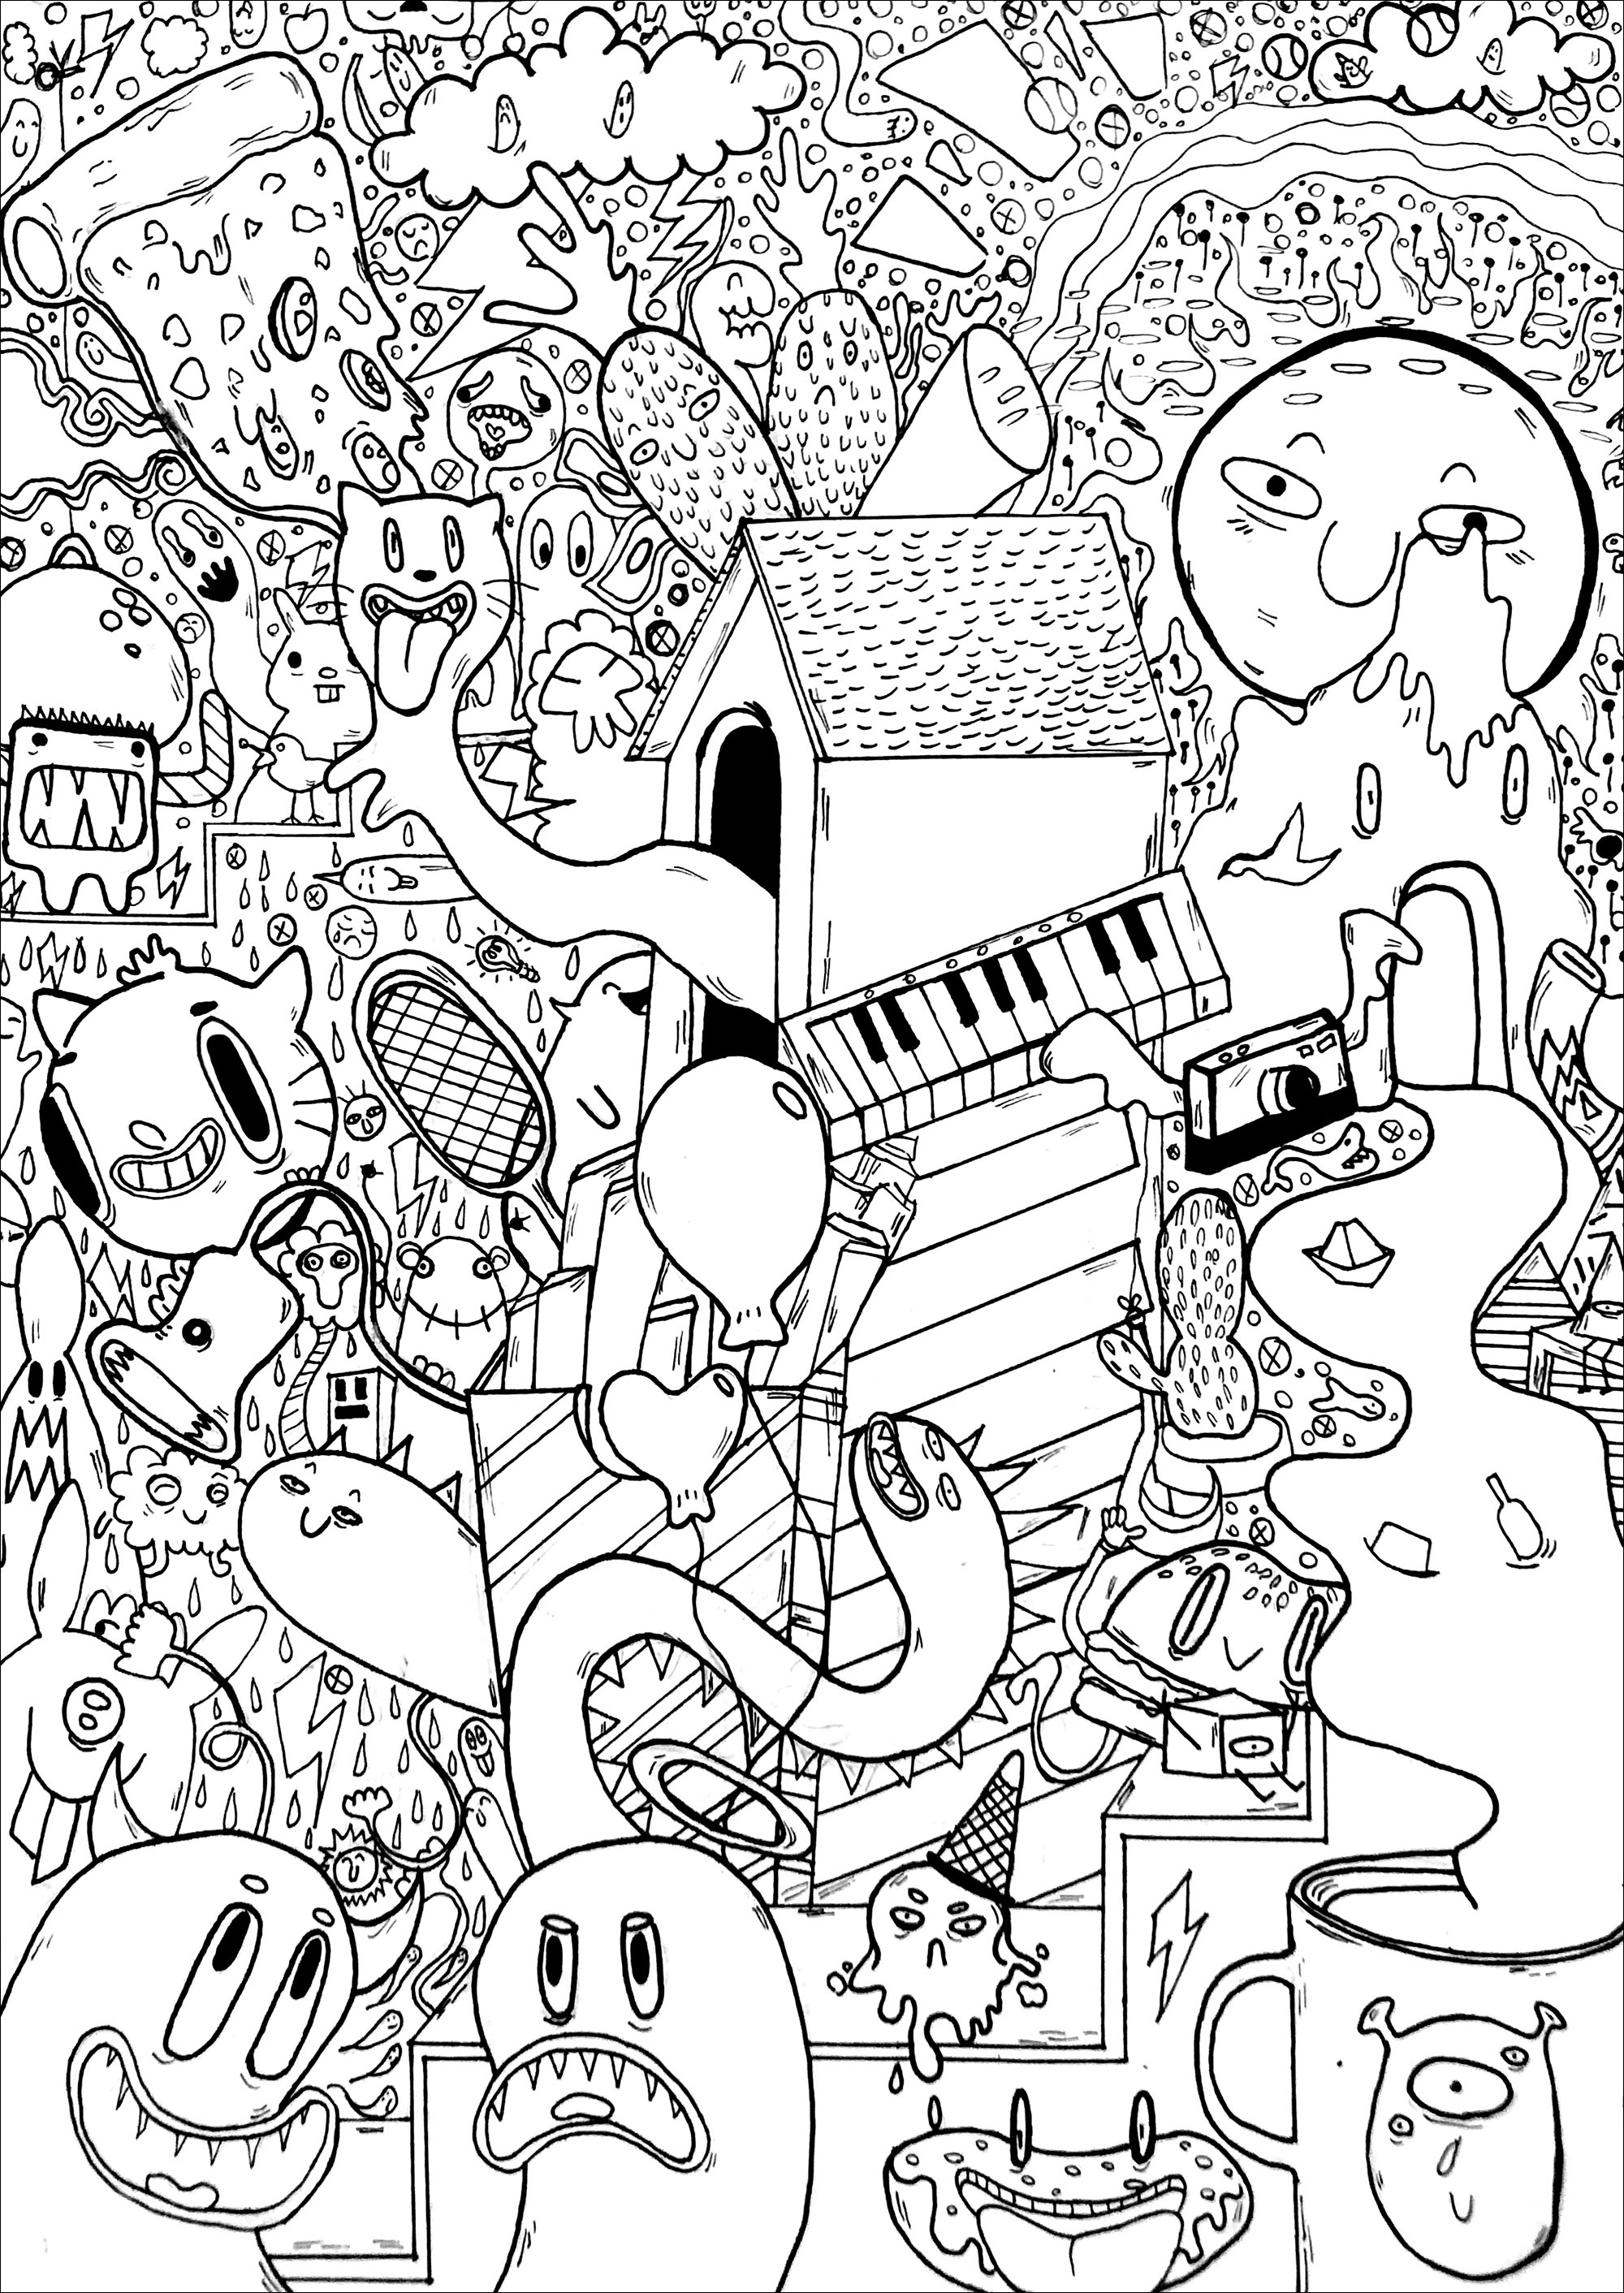 art pages to color art therapy coloring pages for adults free printable art to color art pages